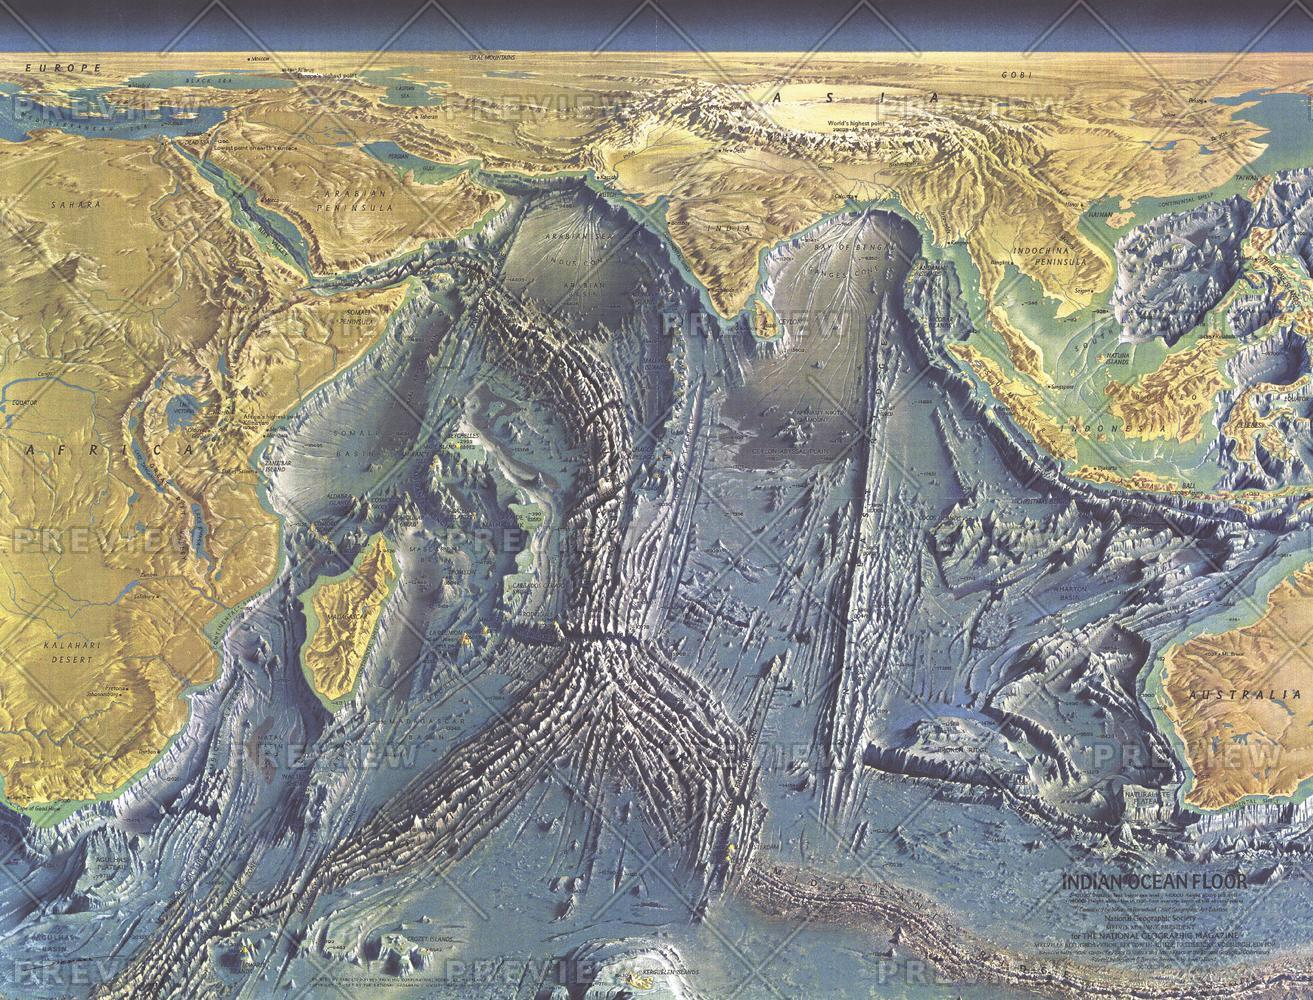 Indian Ocean Floor  -  Published 1967